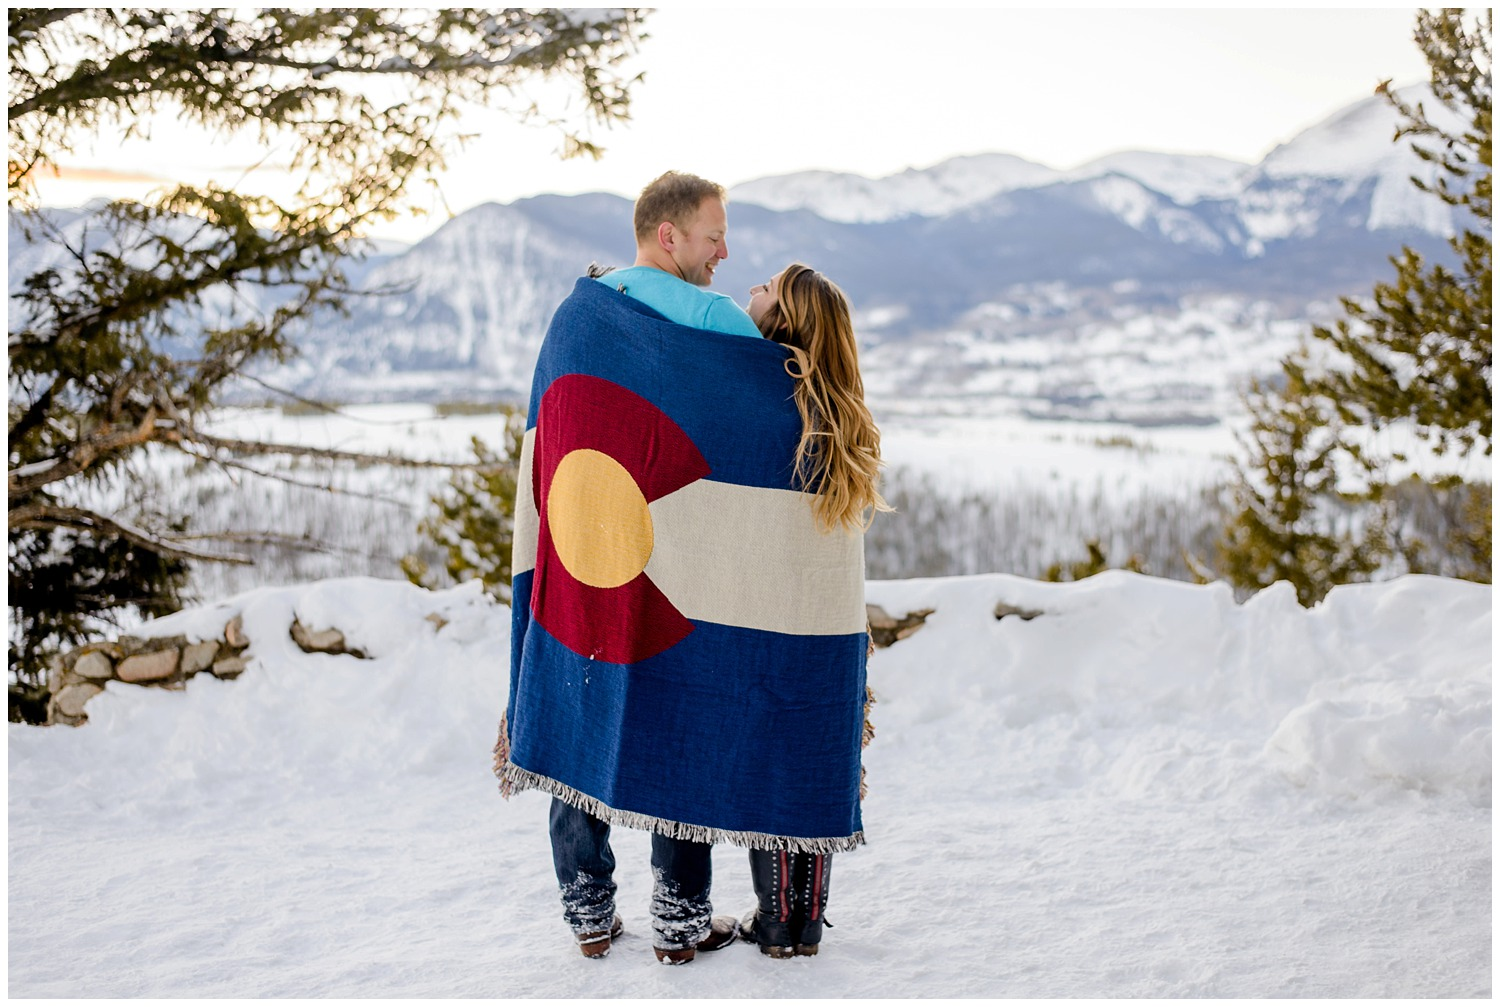 Sapphire-point-winter-engagement-photography_0020.jpg